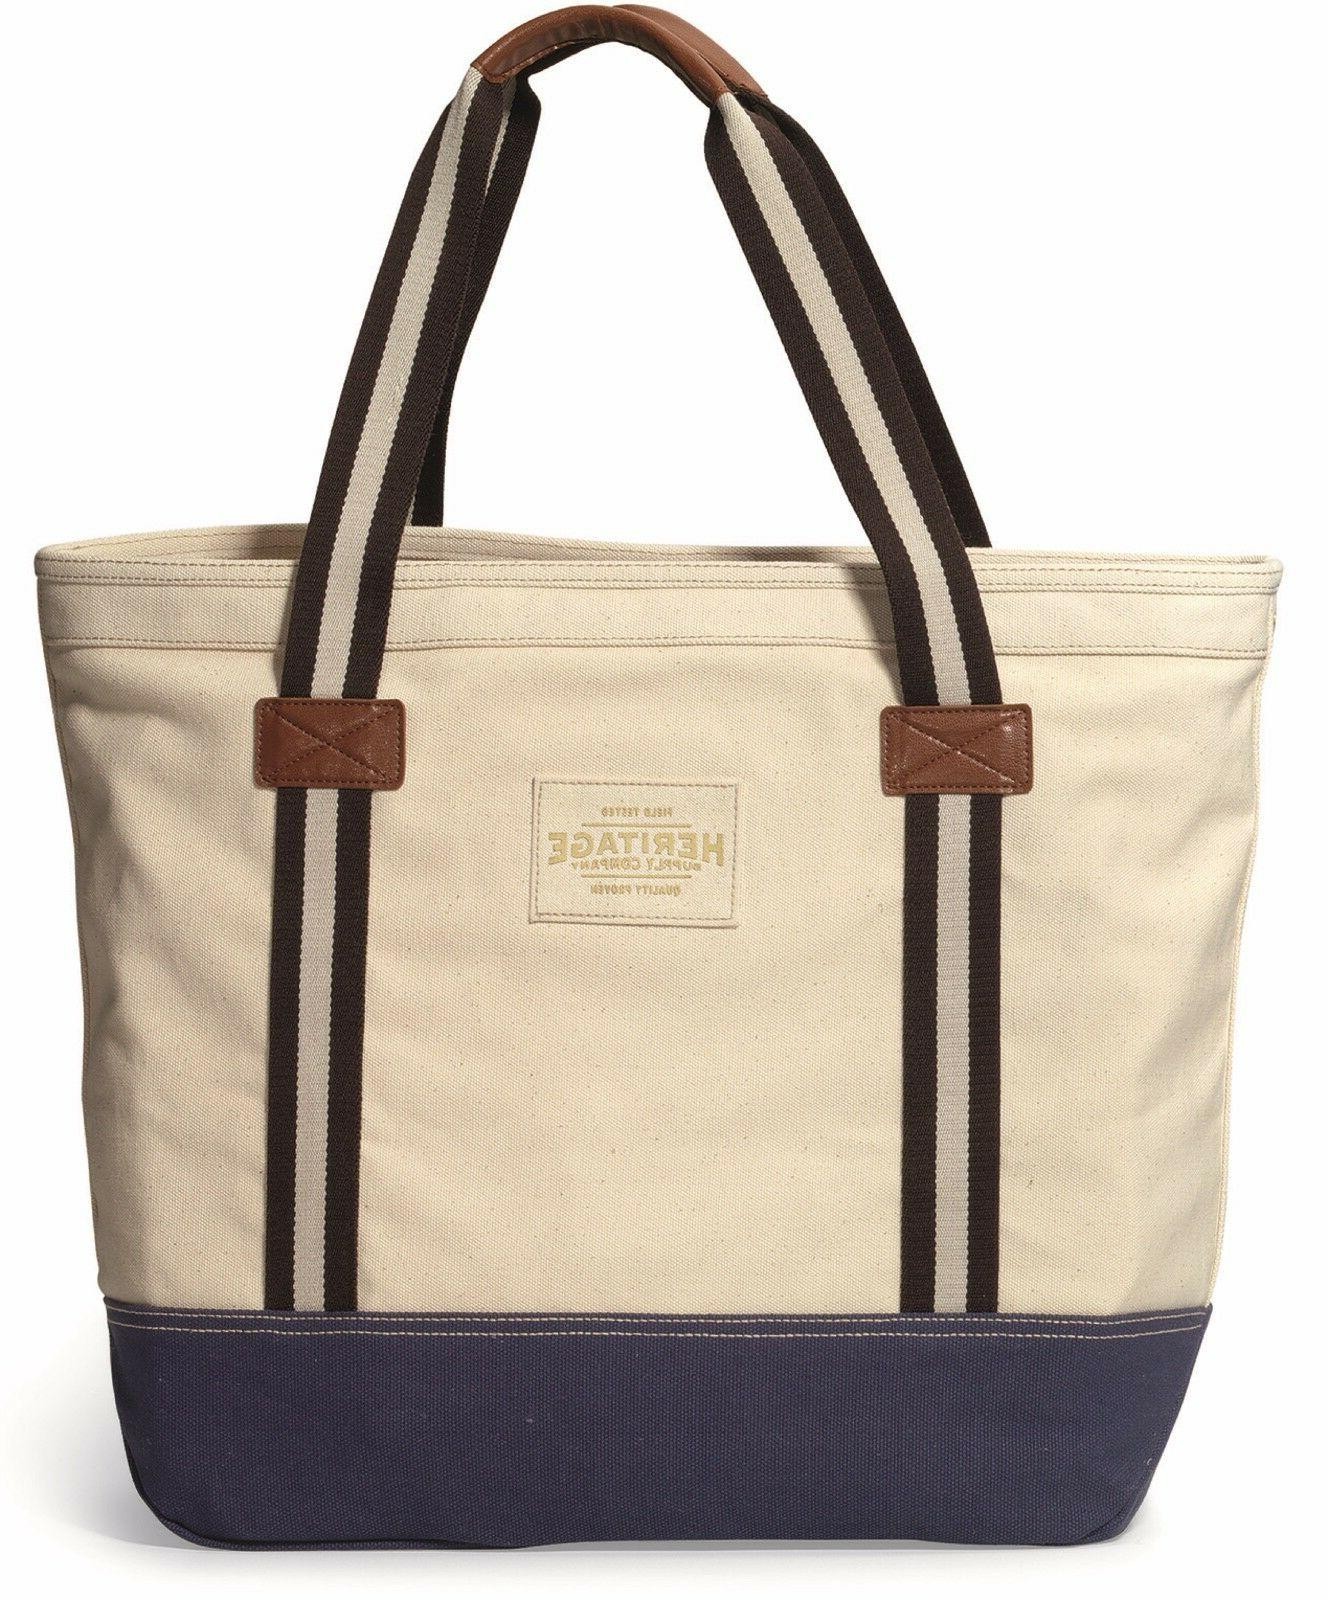 Heritage Nautically Inspired Durable Tote Bag - New